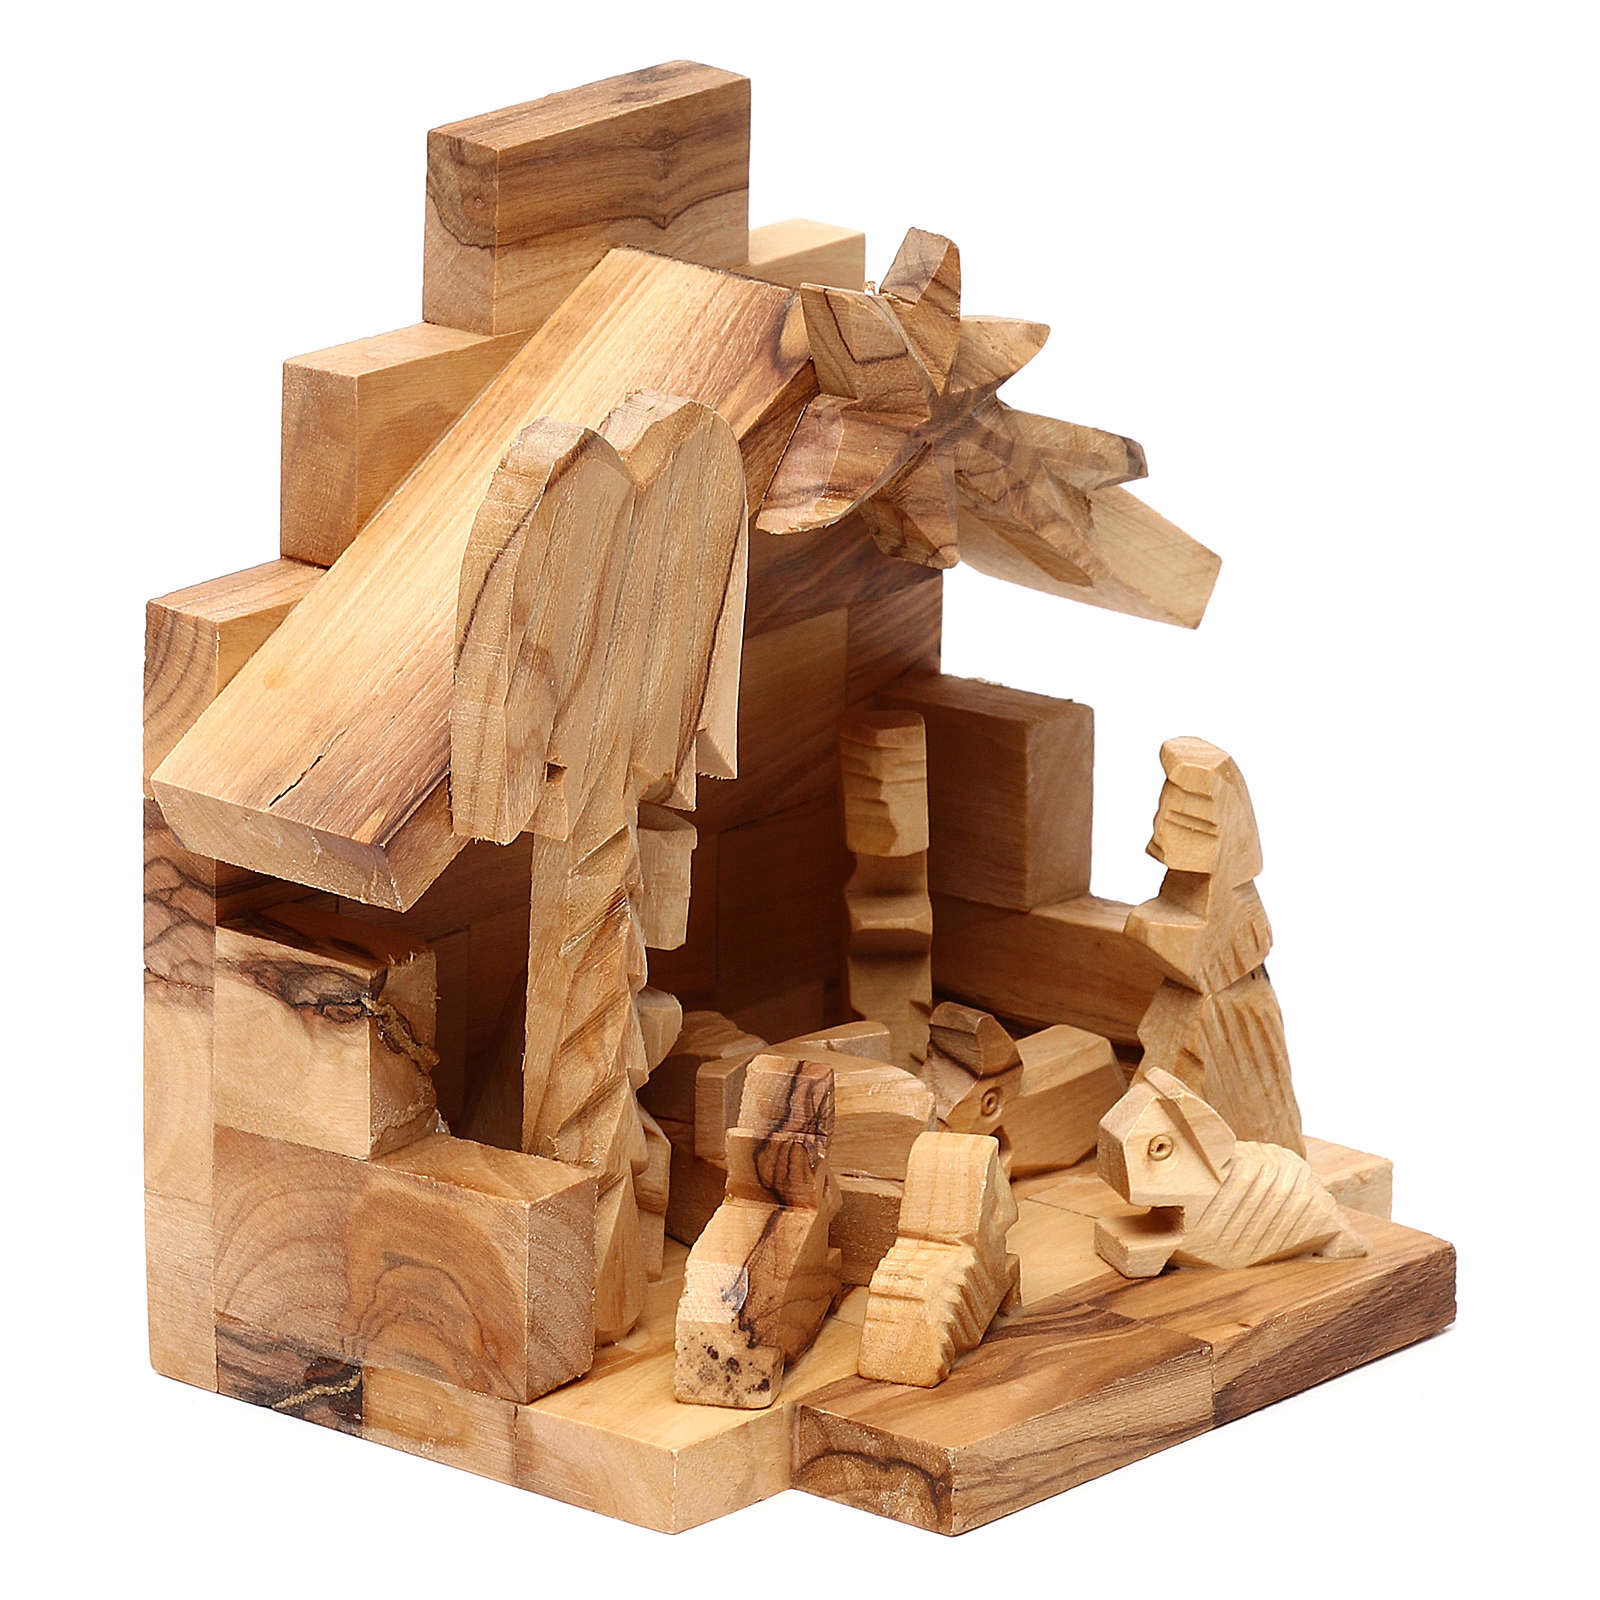 Nativity scene with cave in Bethlehem olive wood 10x15x10 cm 4